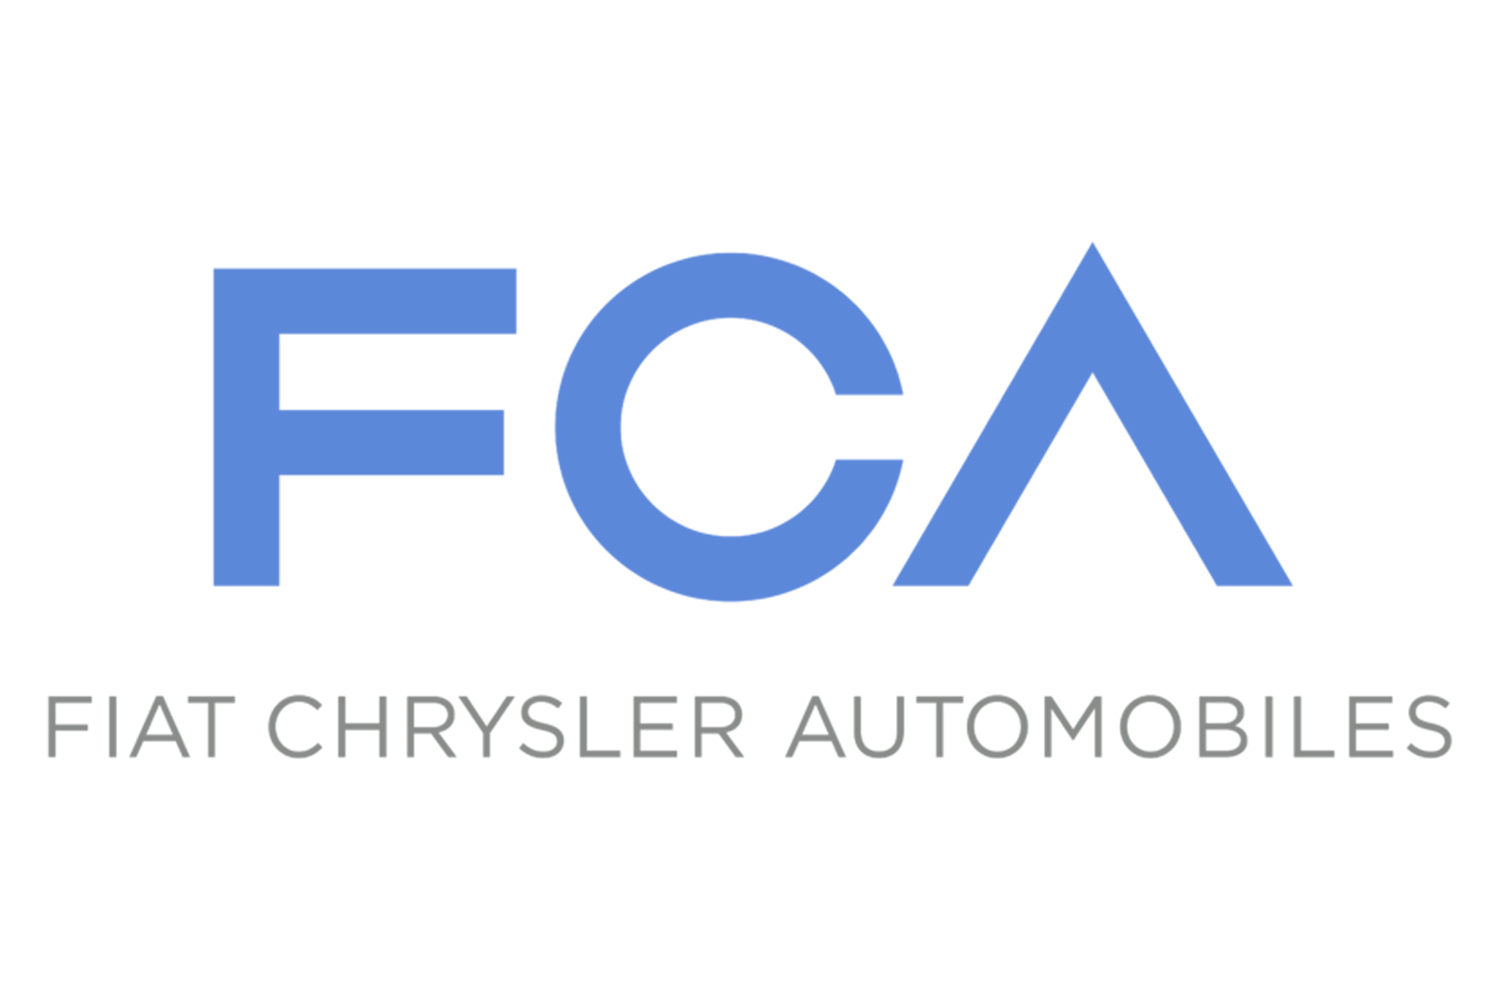 The Fiat-Chrysler Automobiles logo.